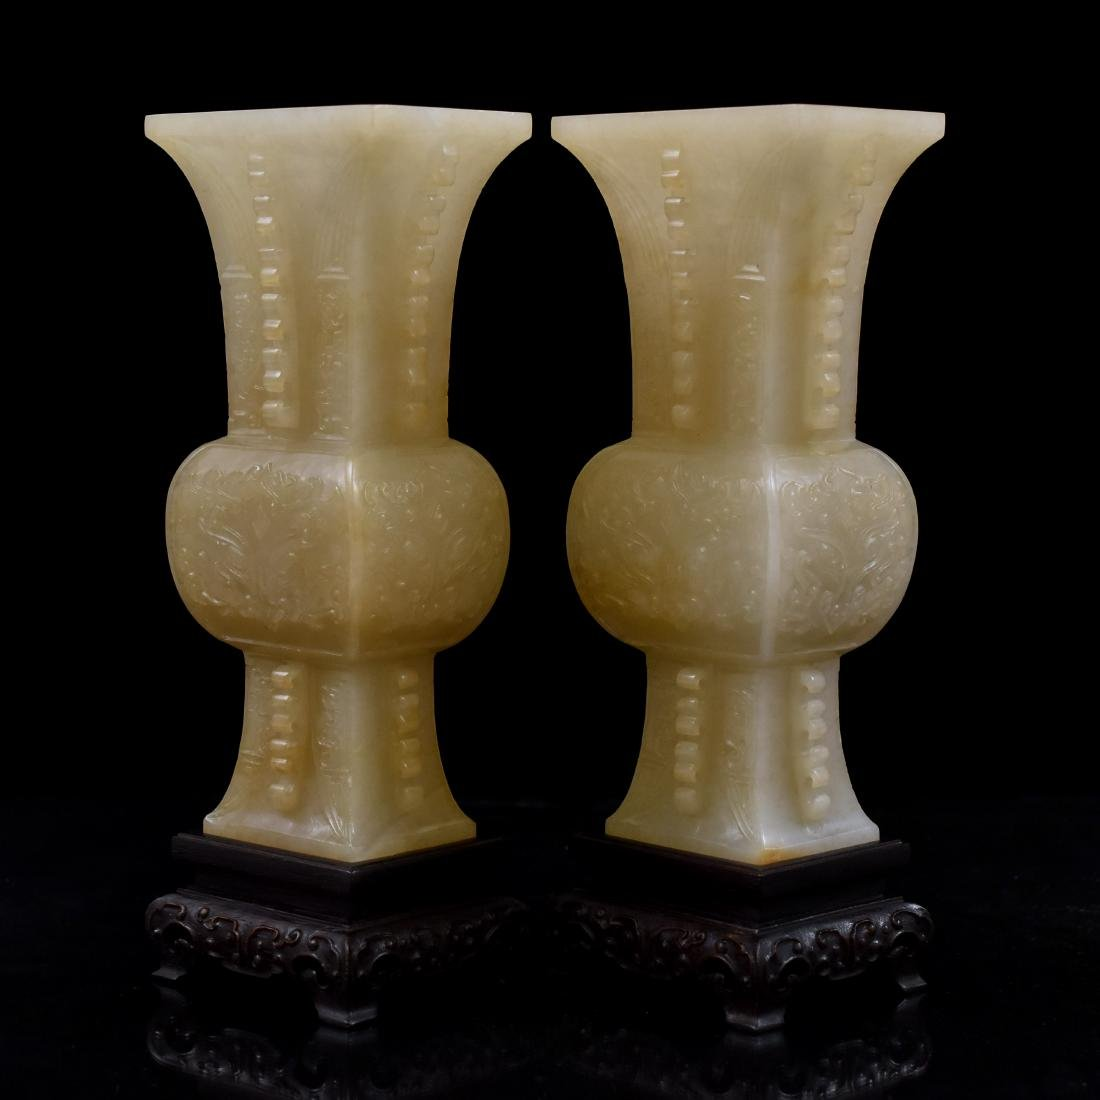 PAIR OF CHINESE JADE GU VASES ON STAND